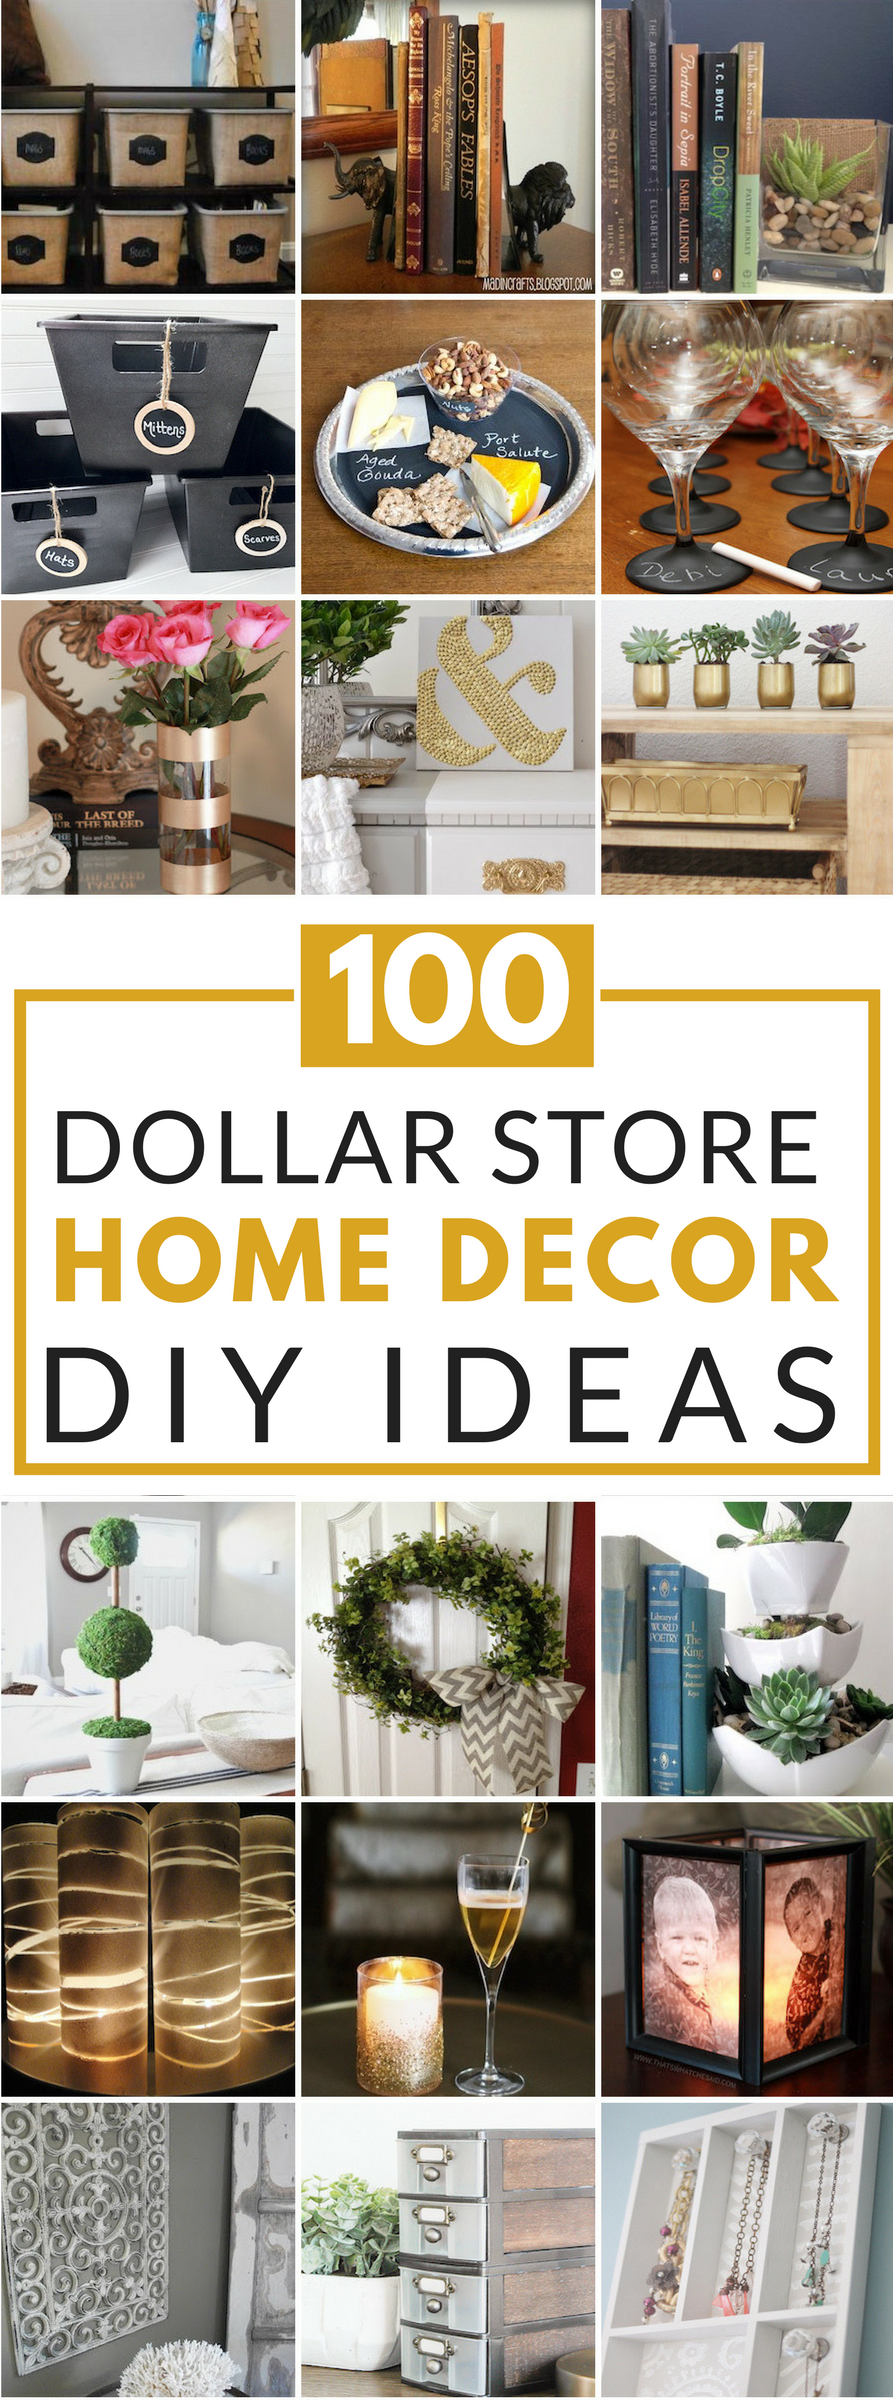 dollar store diy home decor ideas also pinterest rh